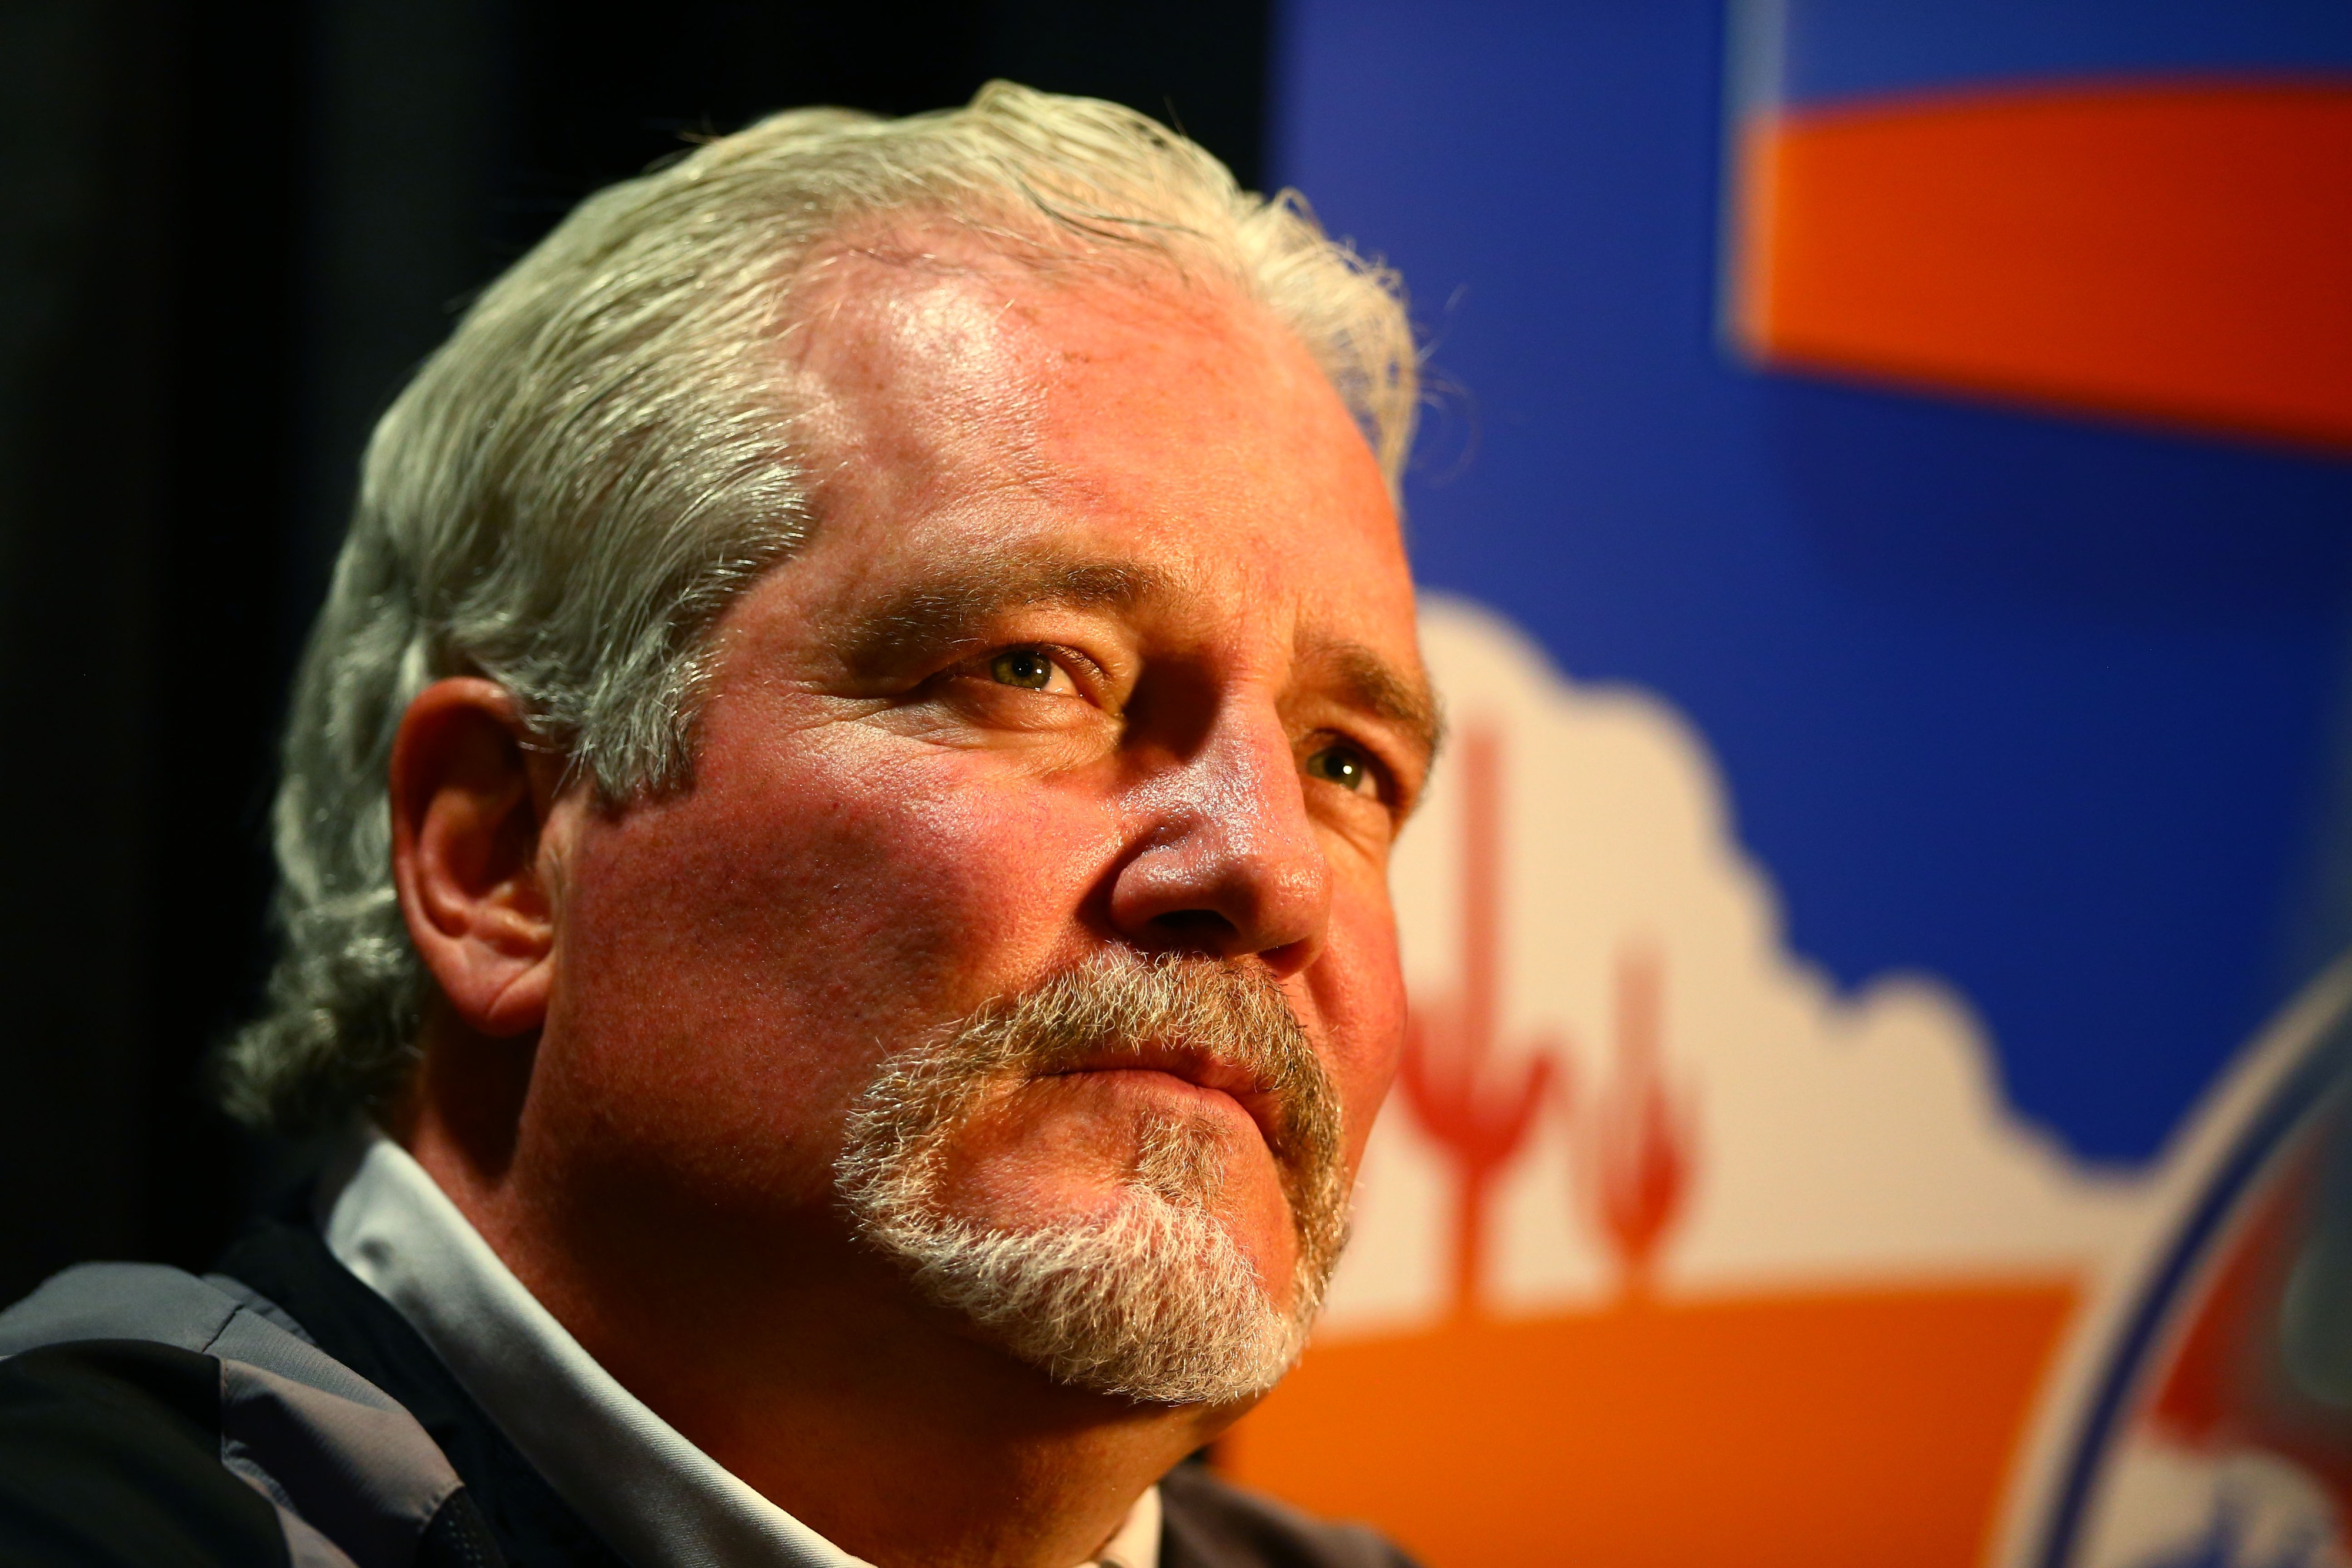 Giants general manager Brian Sabean, perhaps contemplating his next move